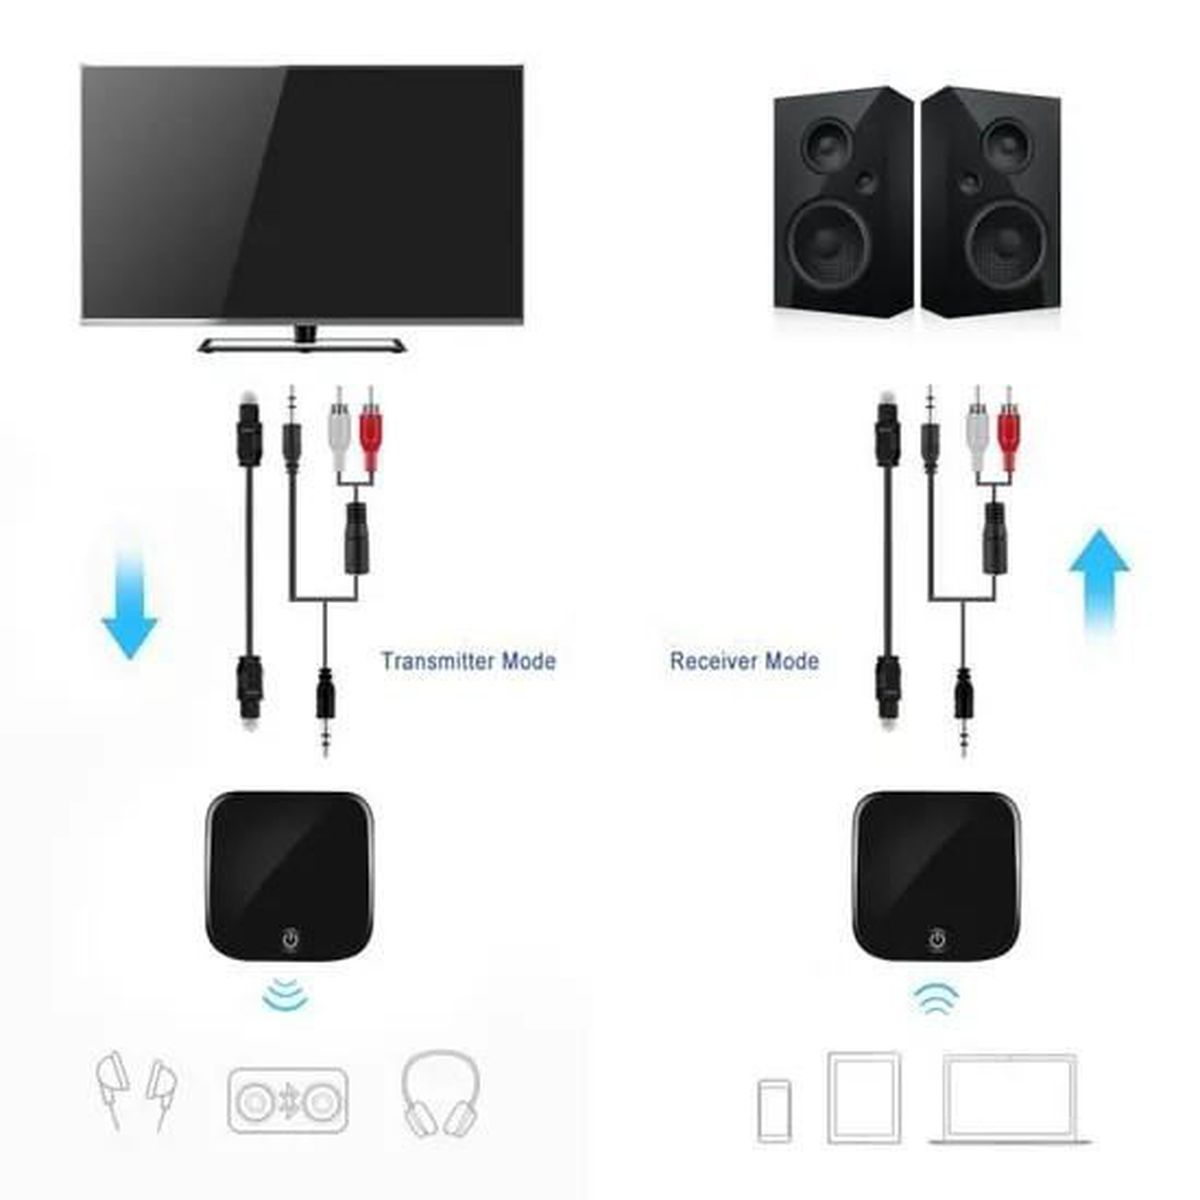 emetteur bluetooth pour tv achat vente emetteur bluetooth pour tv pas cher black friday le. Black Bedroom Furniture Sets. Home Design Ideas